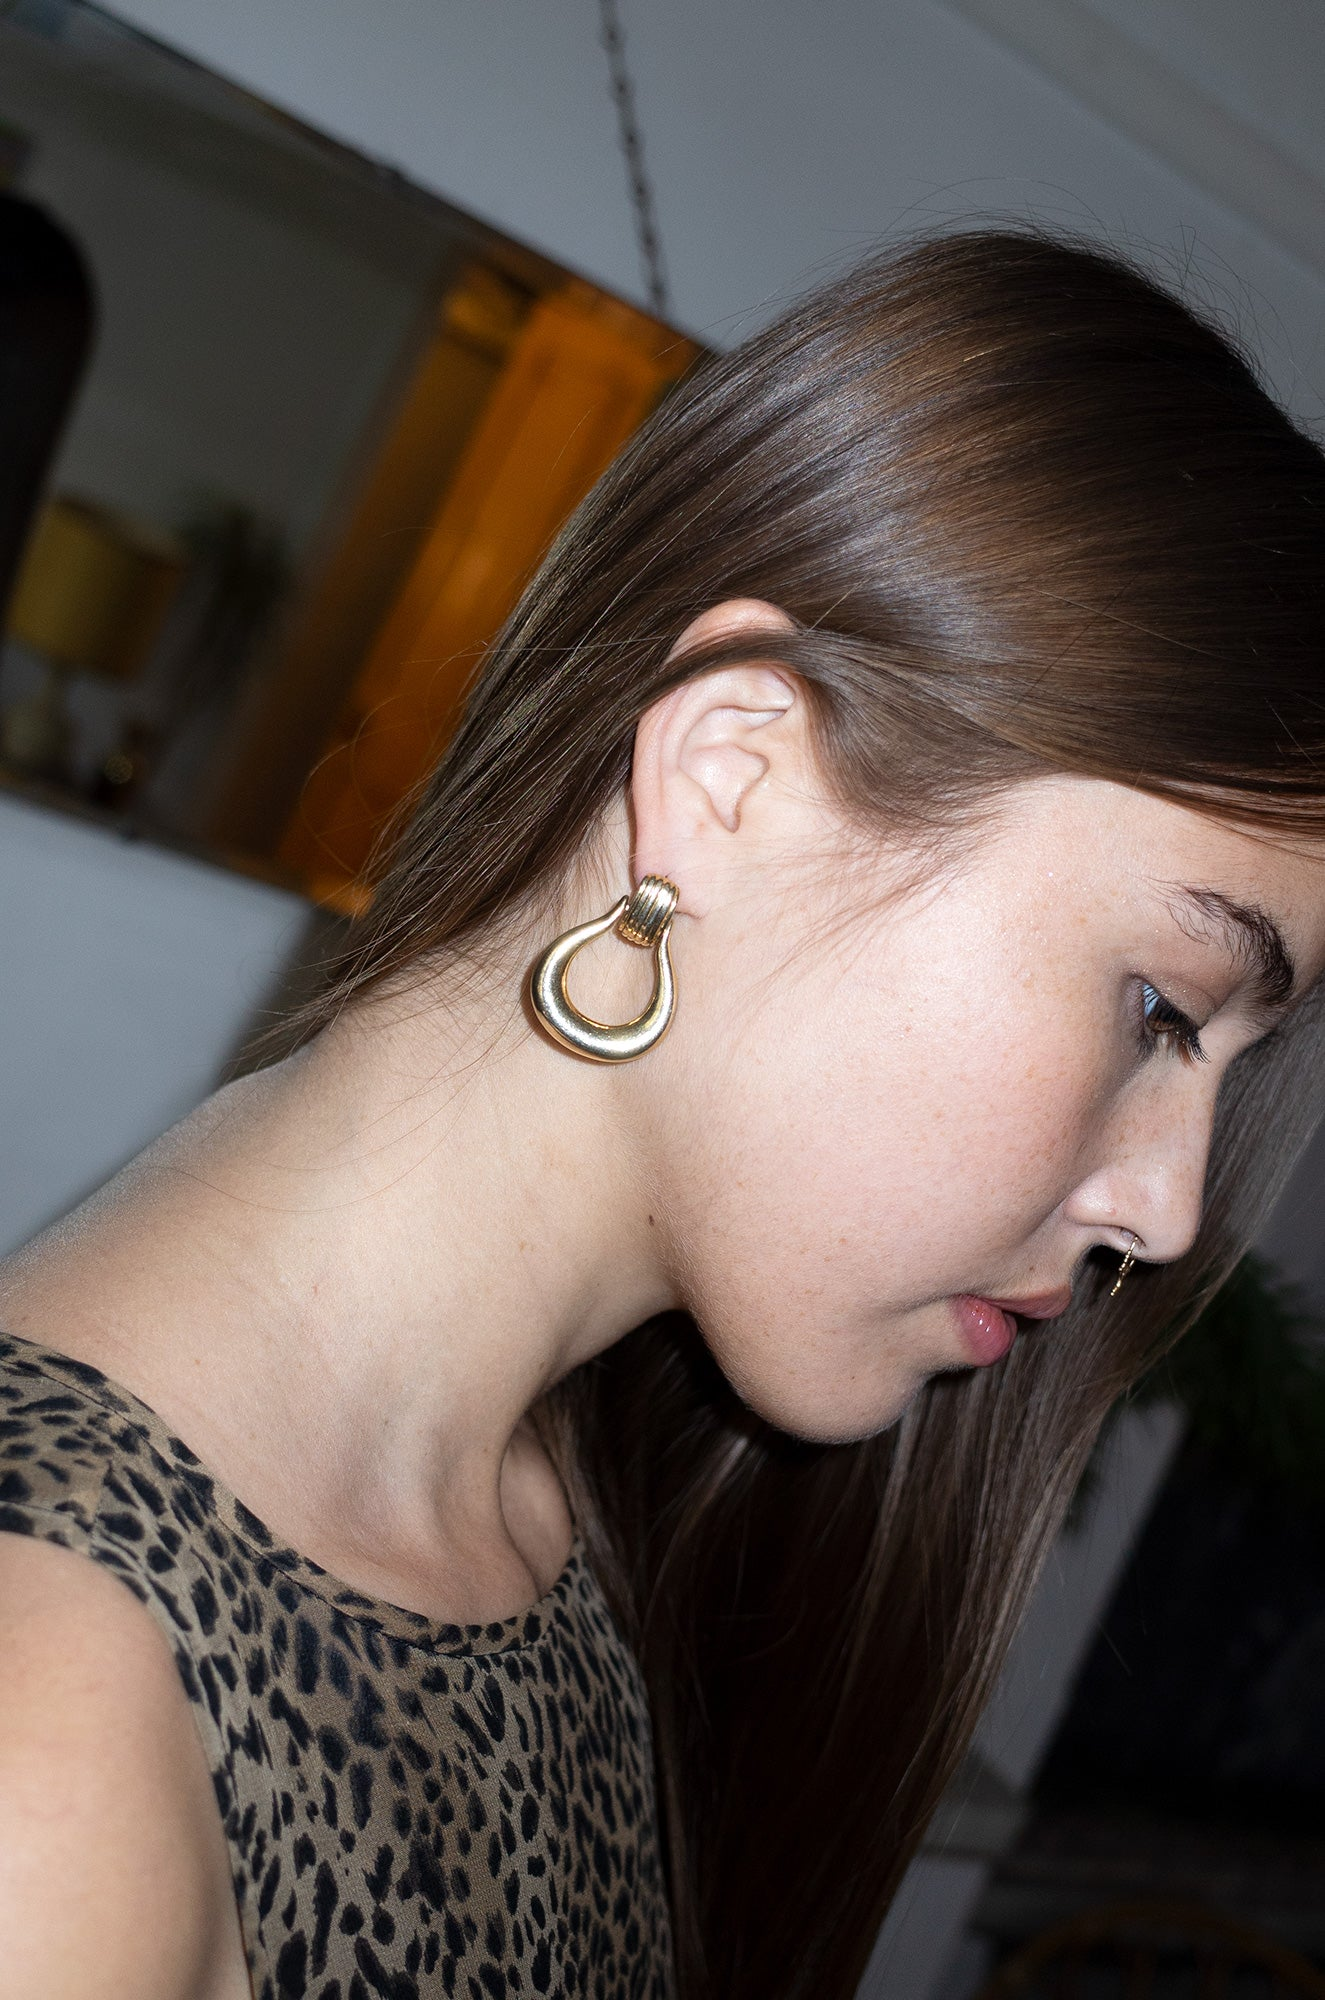 Model wears oversized gold door knocker earrings